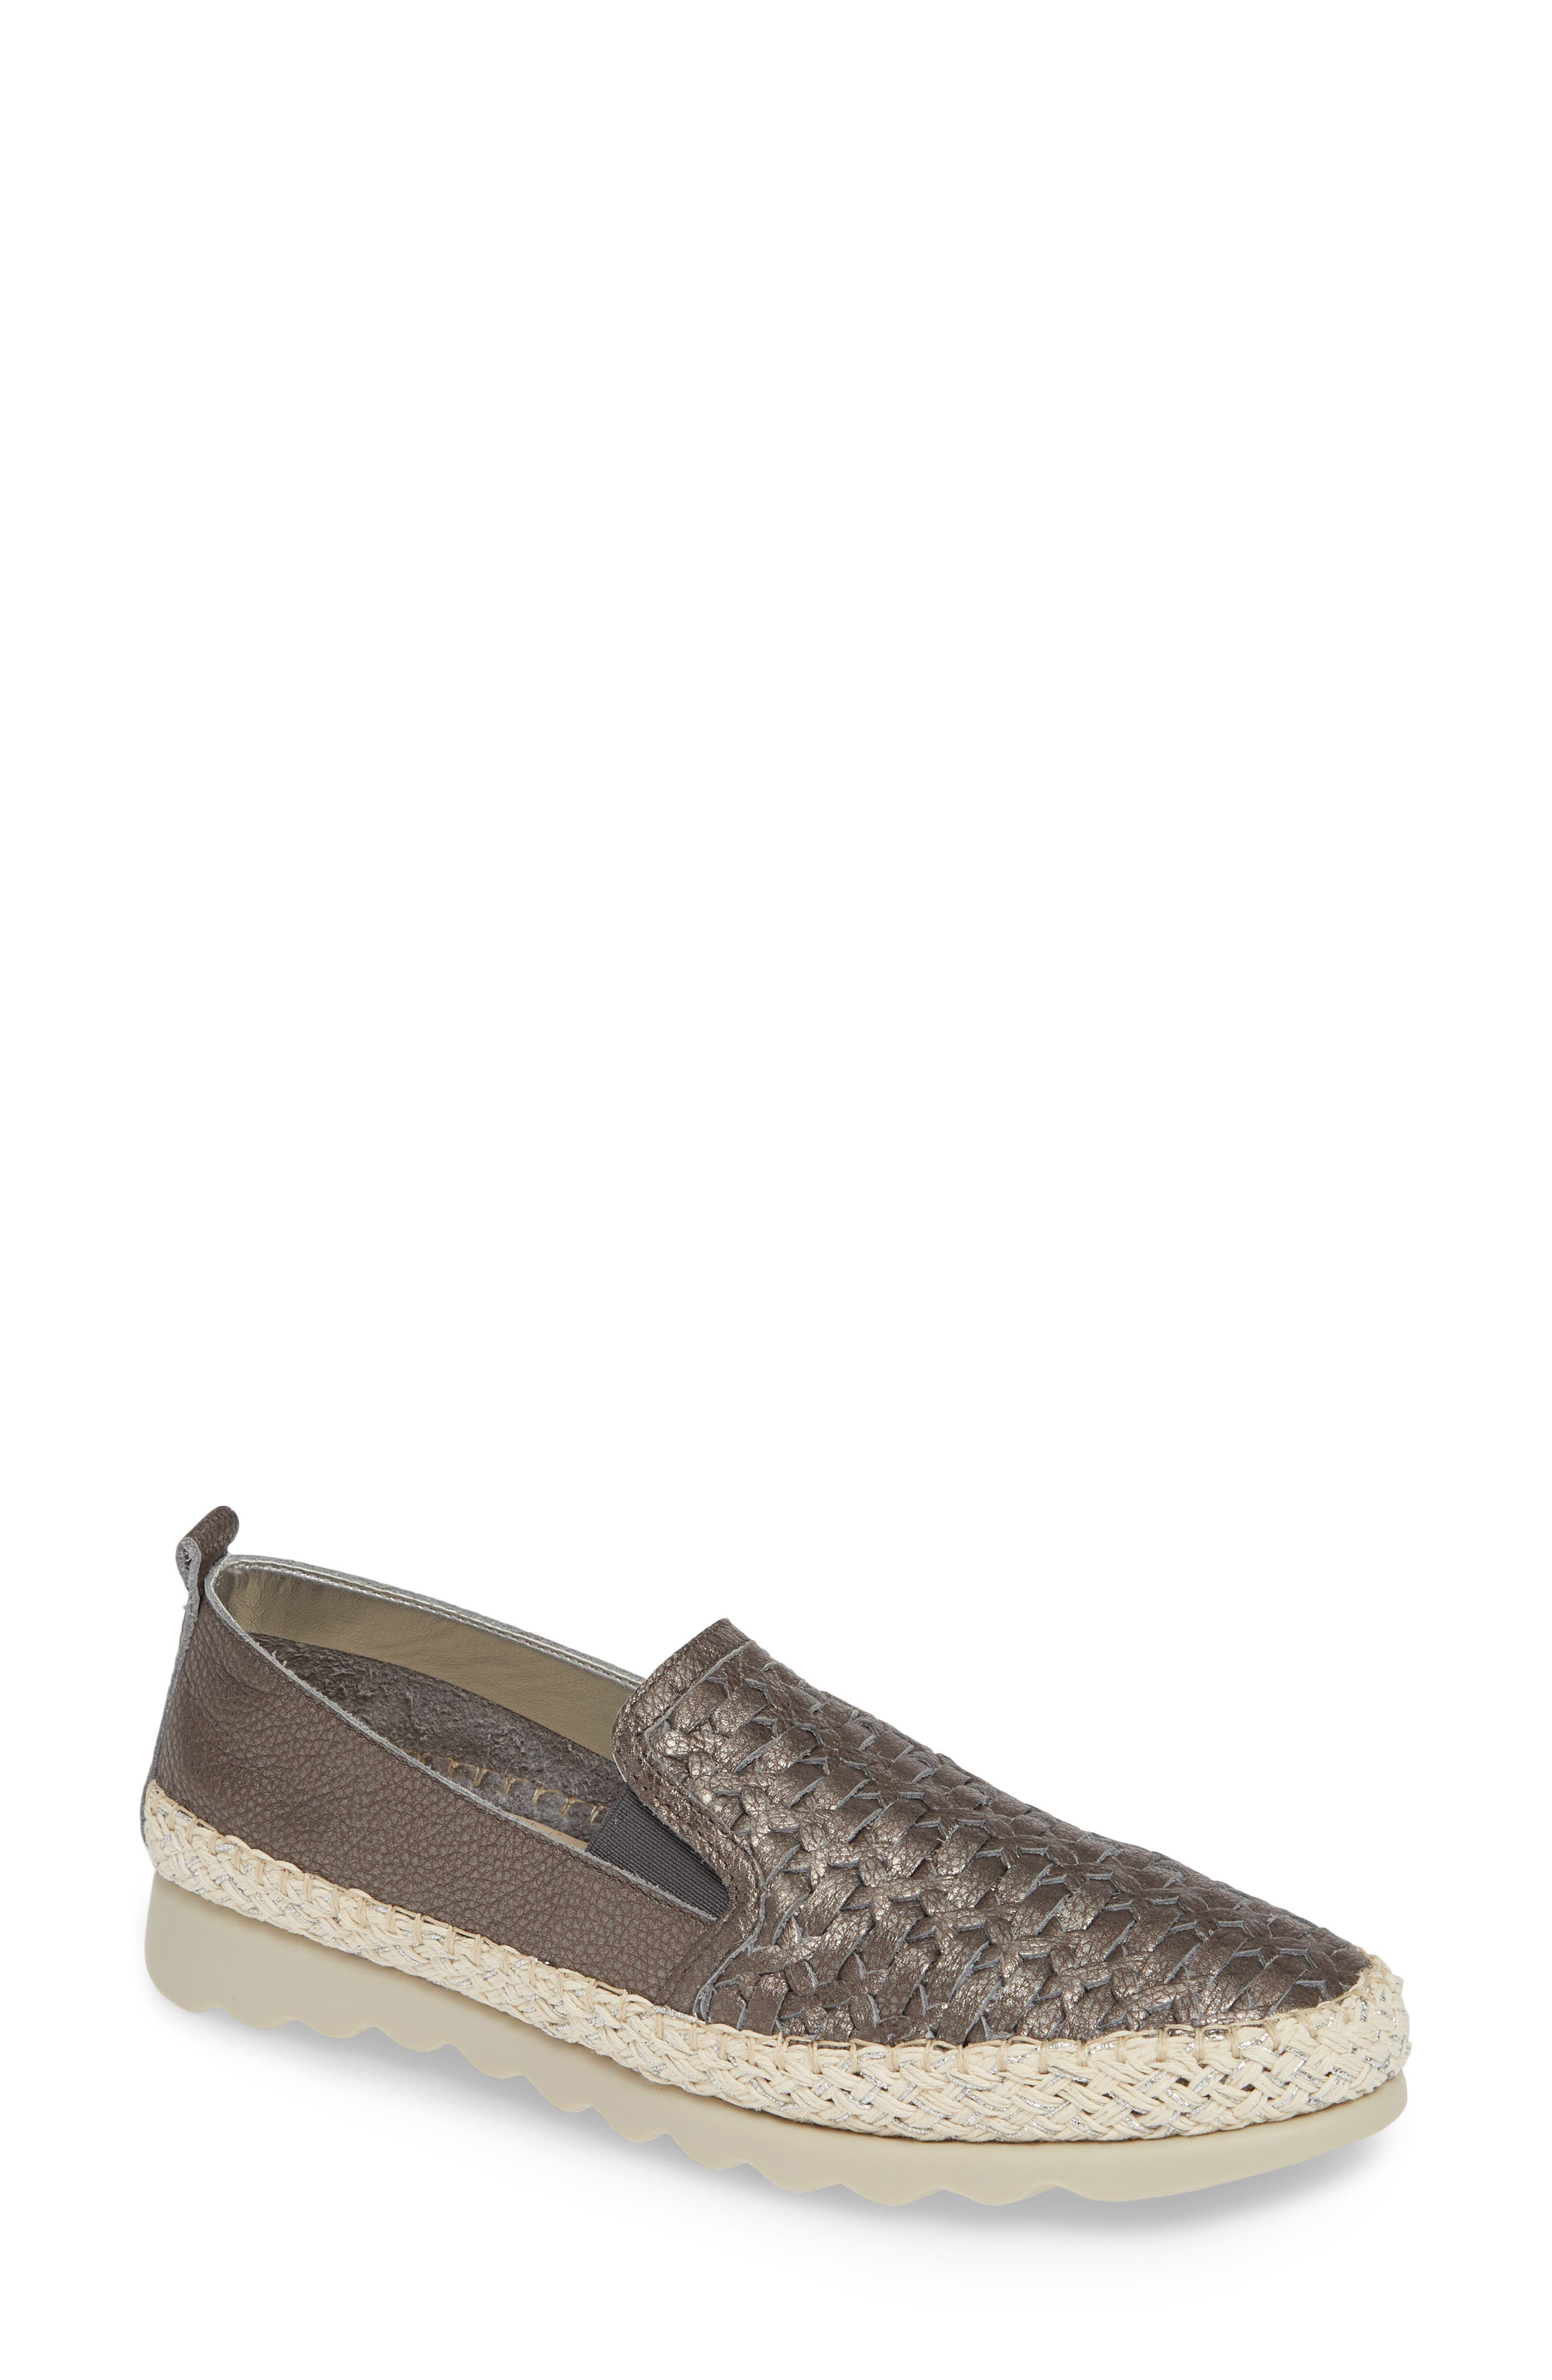 Chapter Woven Slip-On Sneaker, Main, color, CANNA DI FUCILE CURTIS LEATHER